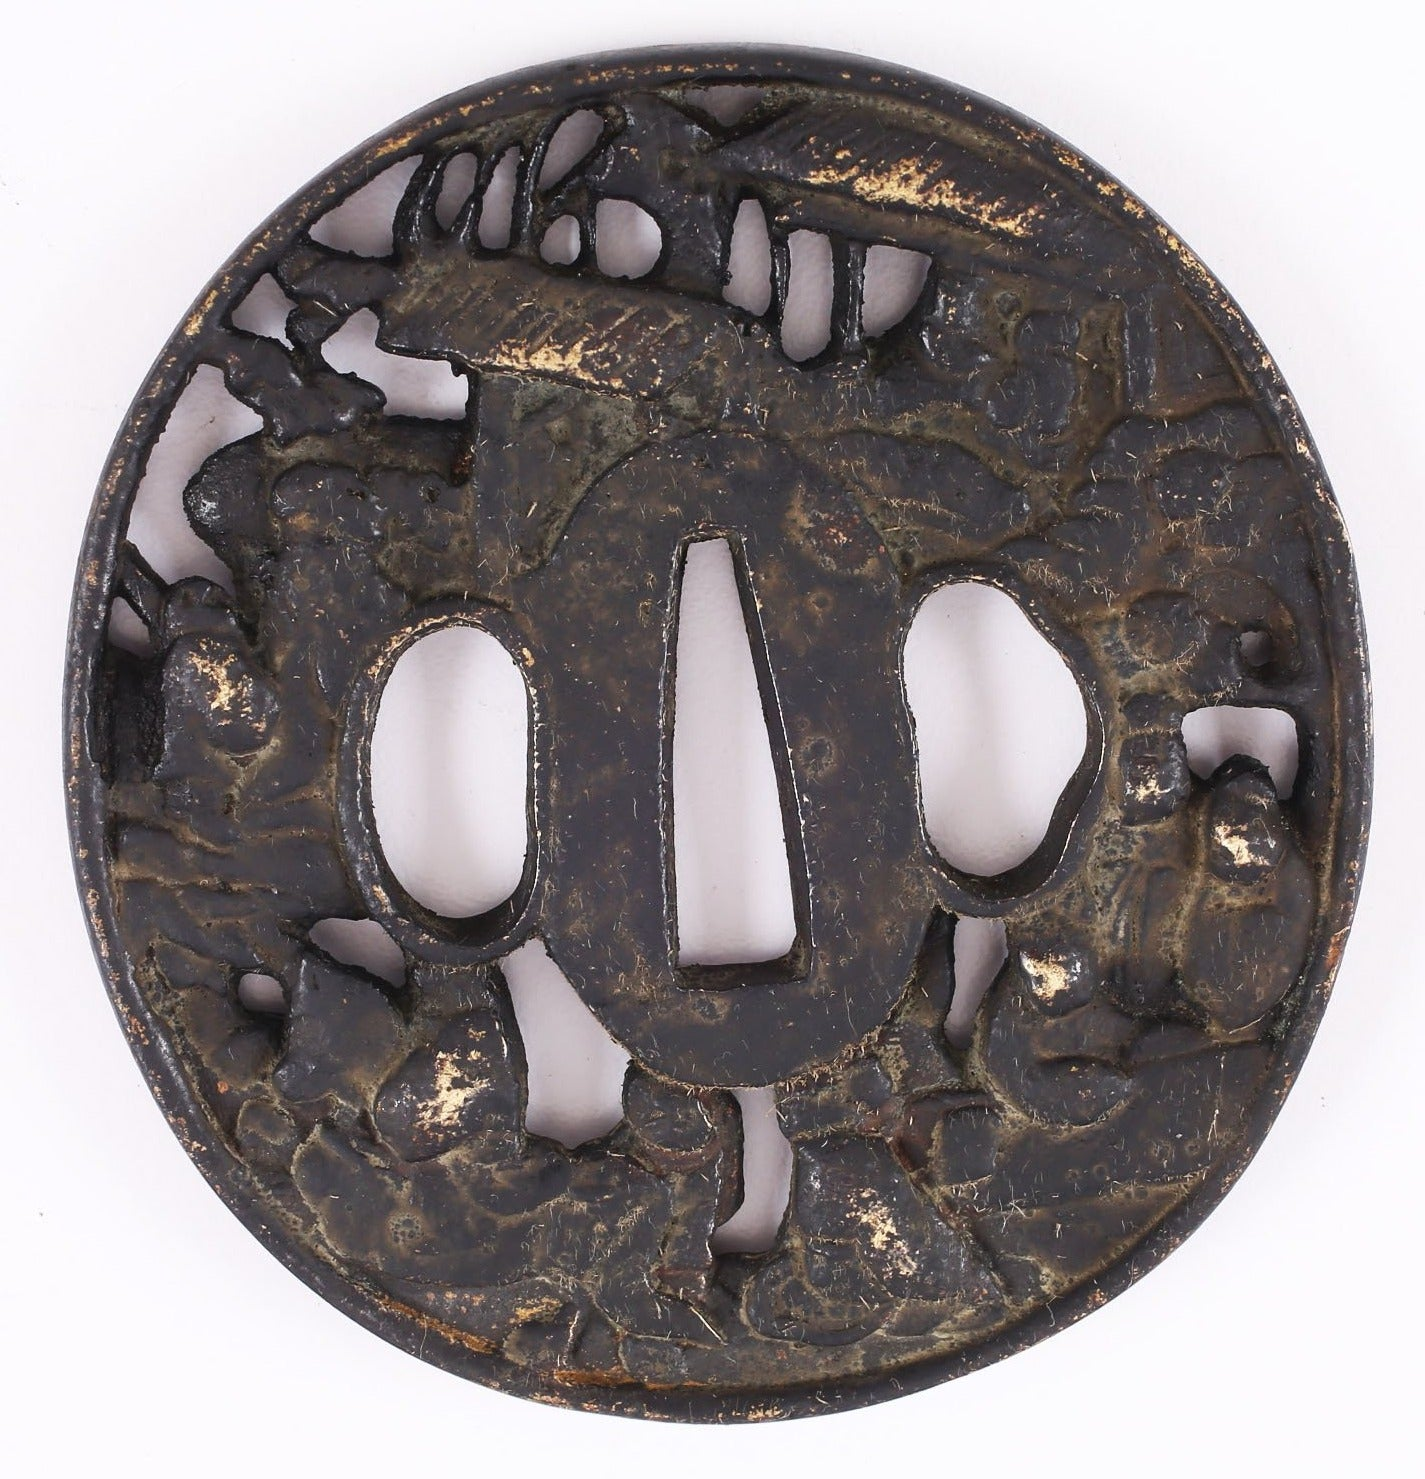 JAPANESE SWORD GUARD TSUBA - Fagan Arms